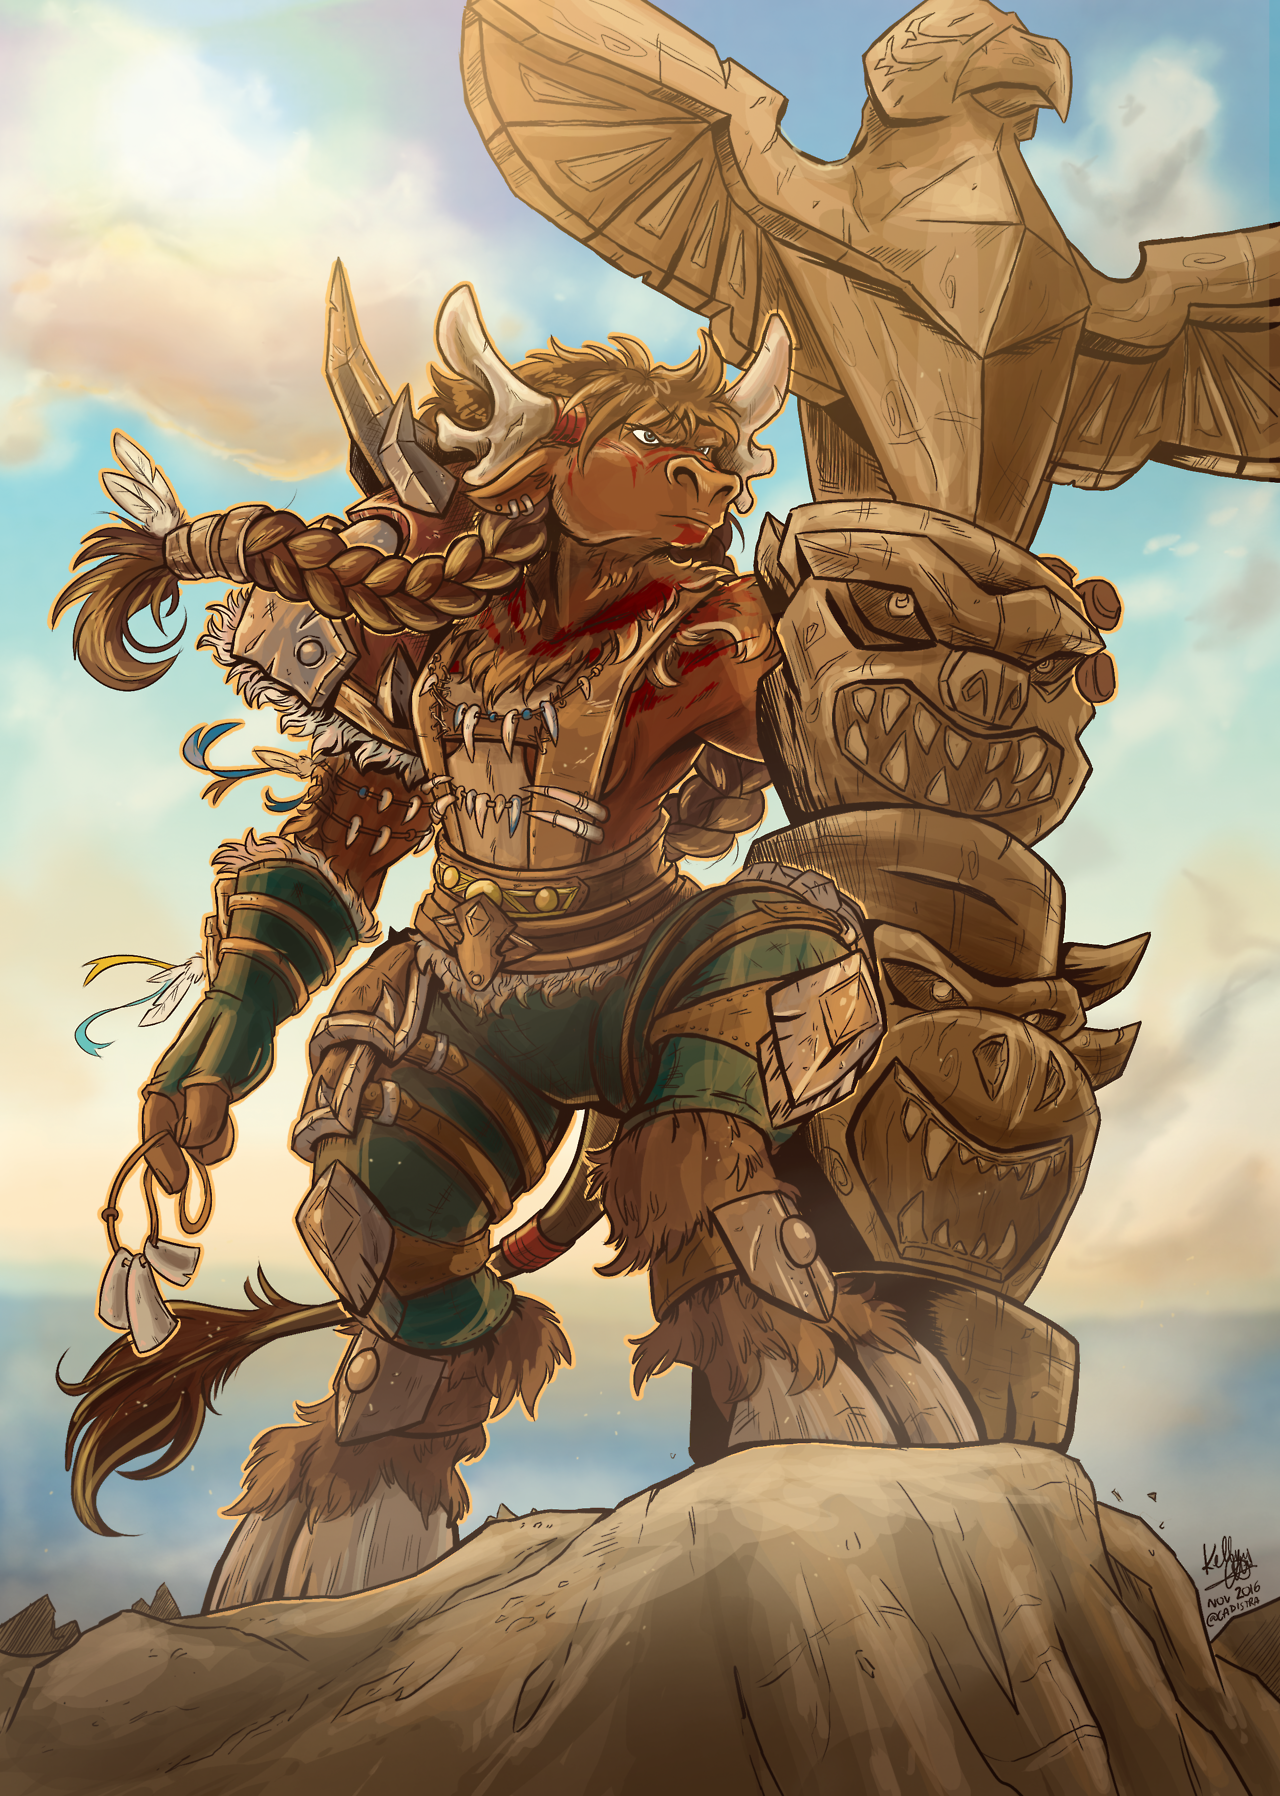 Mayla Highmountain! This was really fun to do and I feel